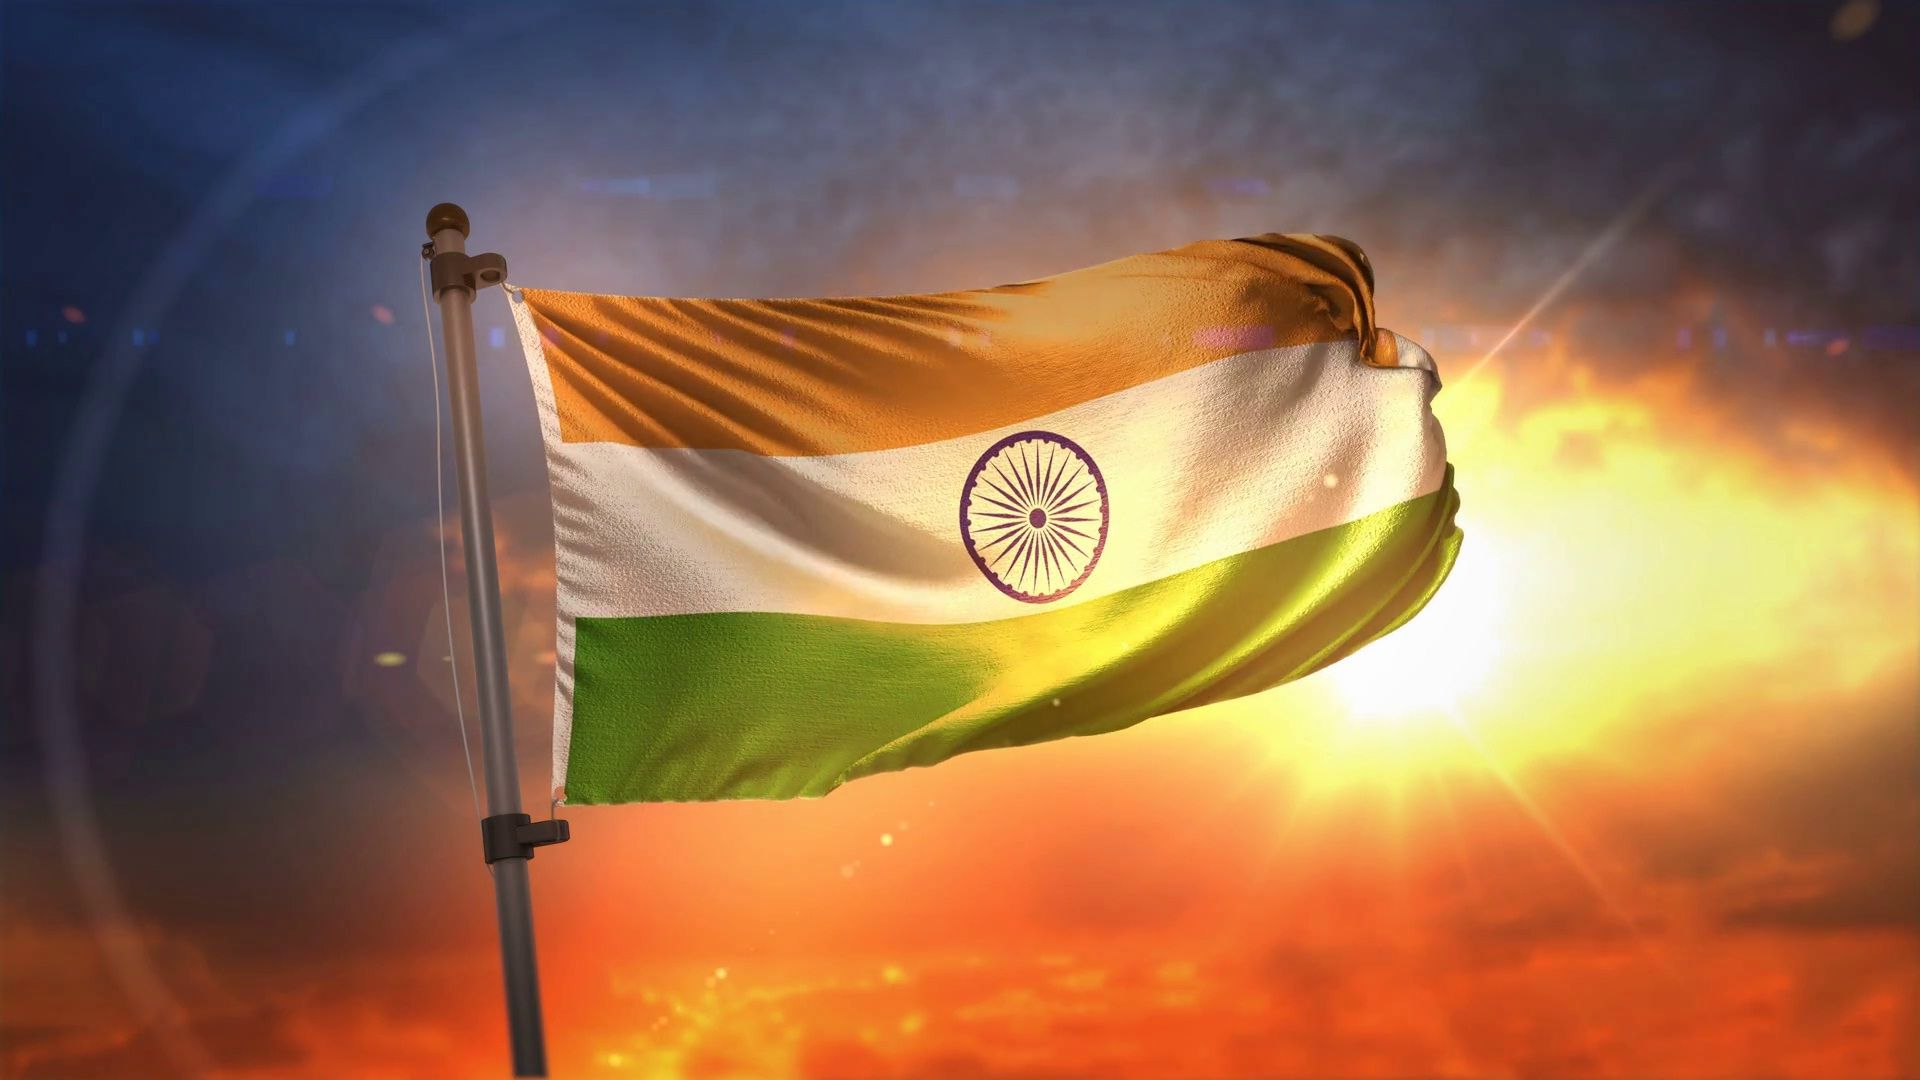 Indian flag hd wallpapers top free indian flag hd backgrounds wallpaperaccess - Indian flag 4k wallpaper ...